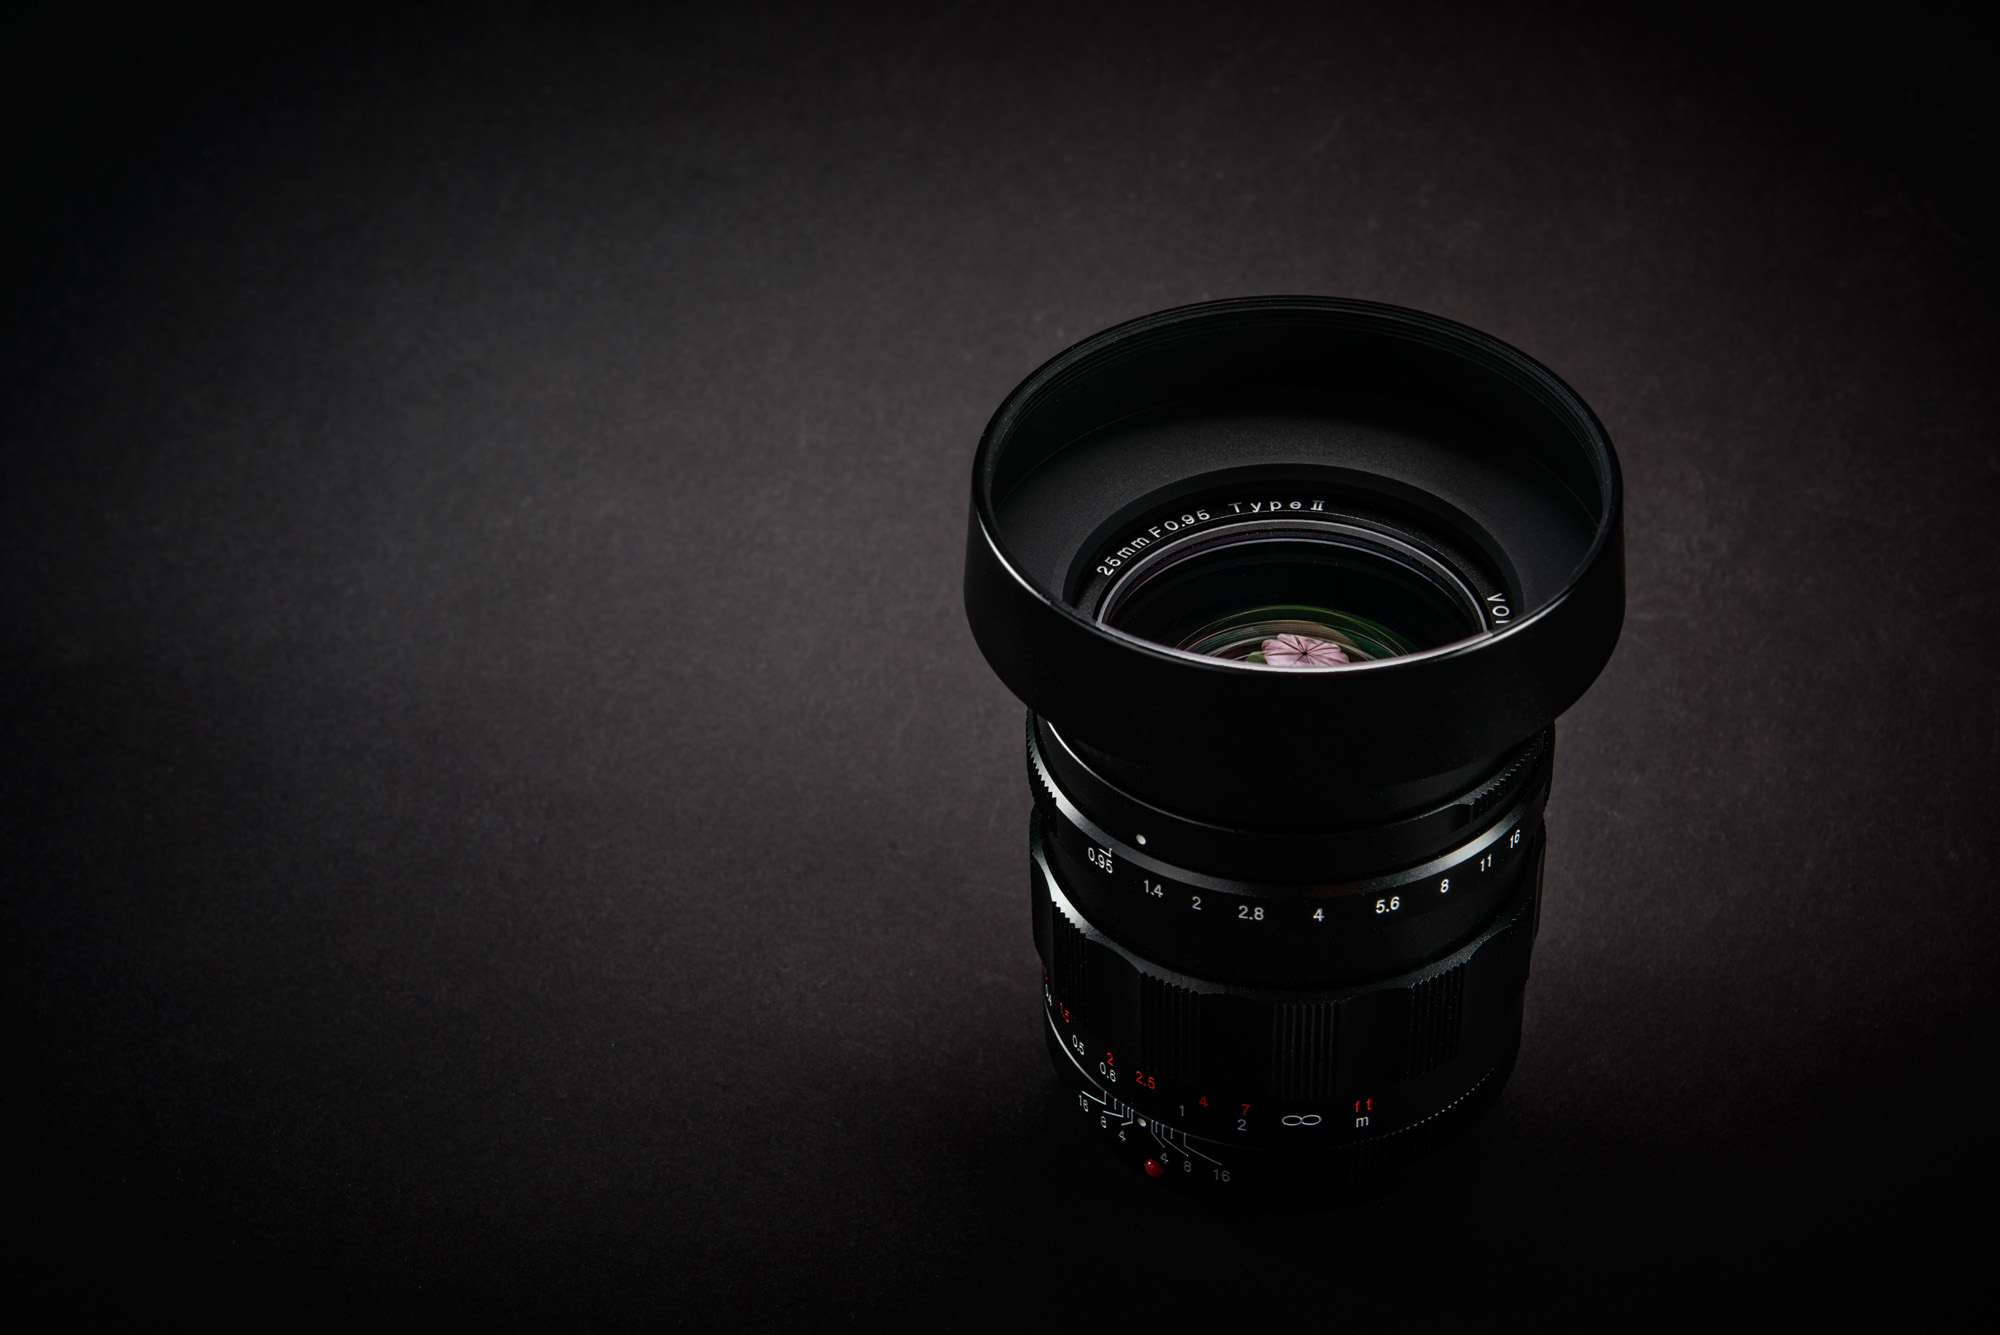 voigtlander-nokton-25mm-f0.95-review-04